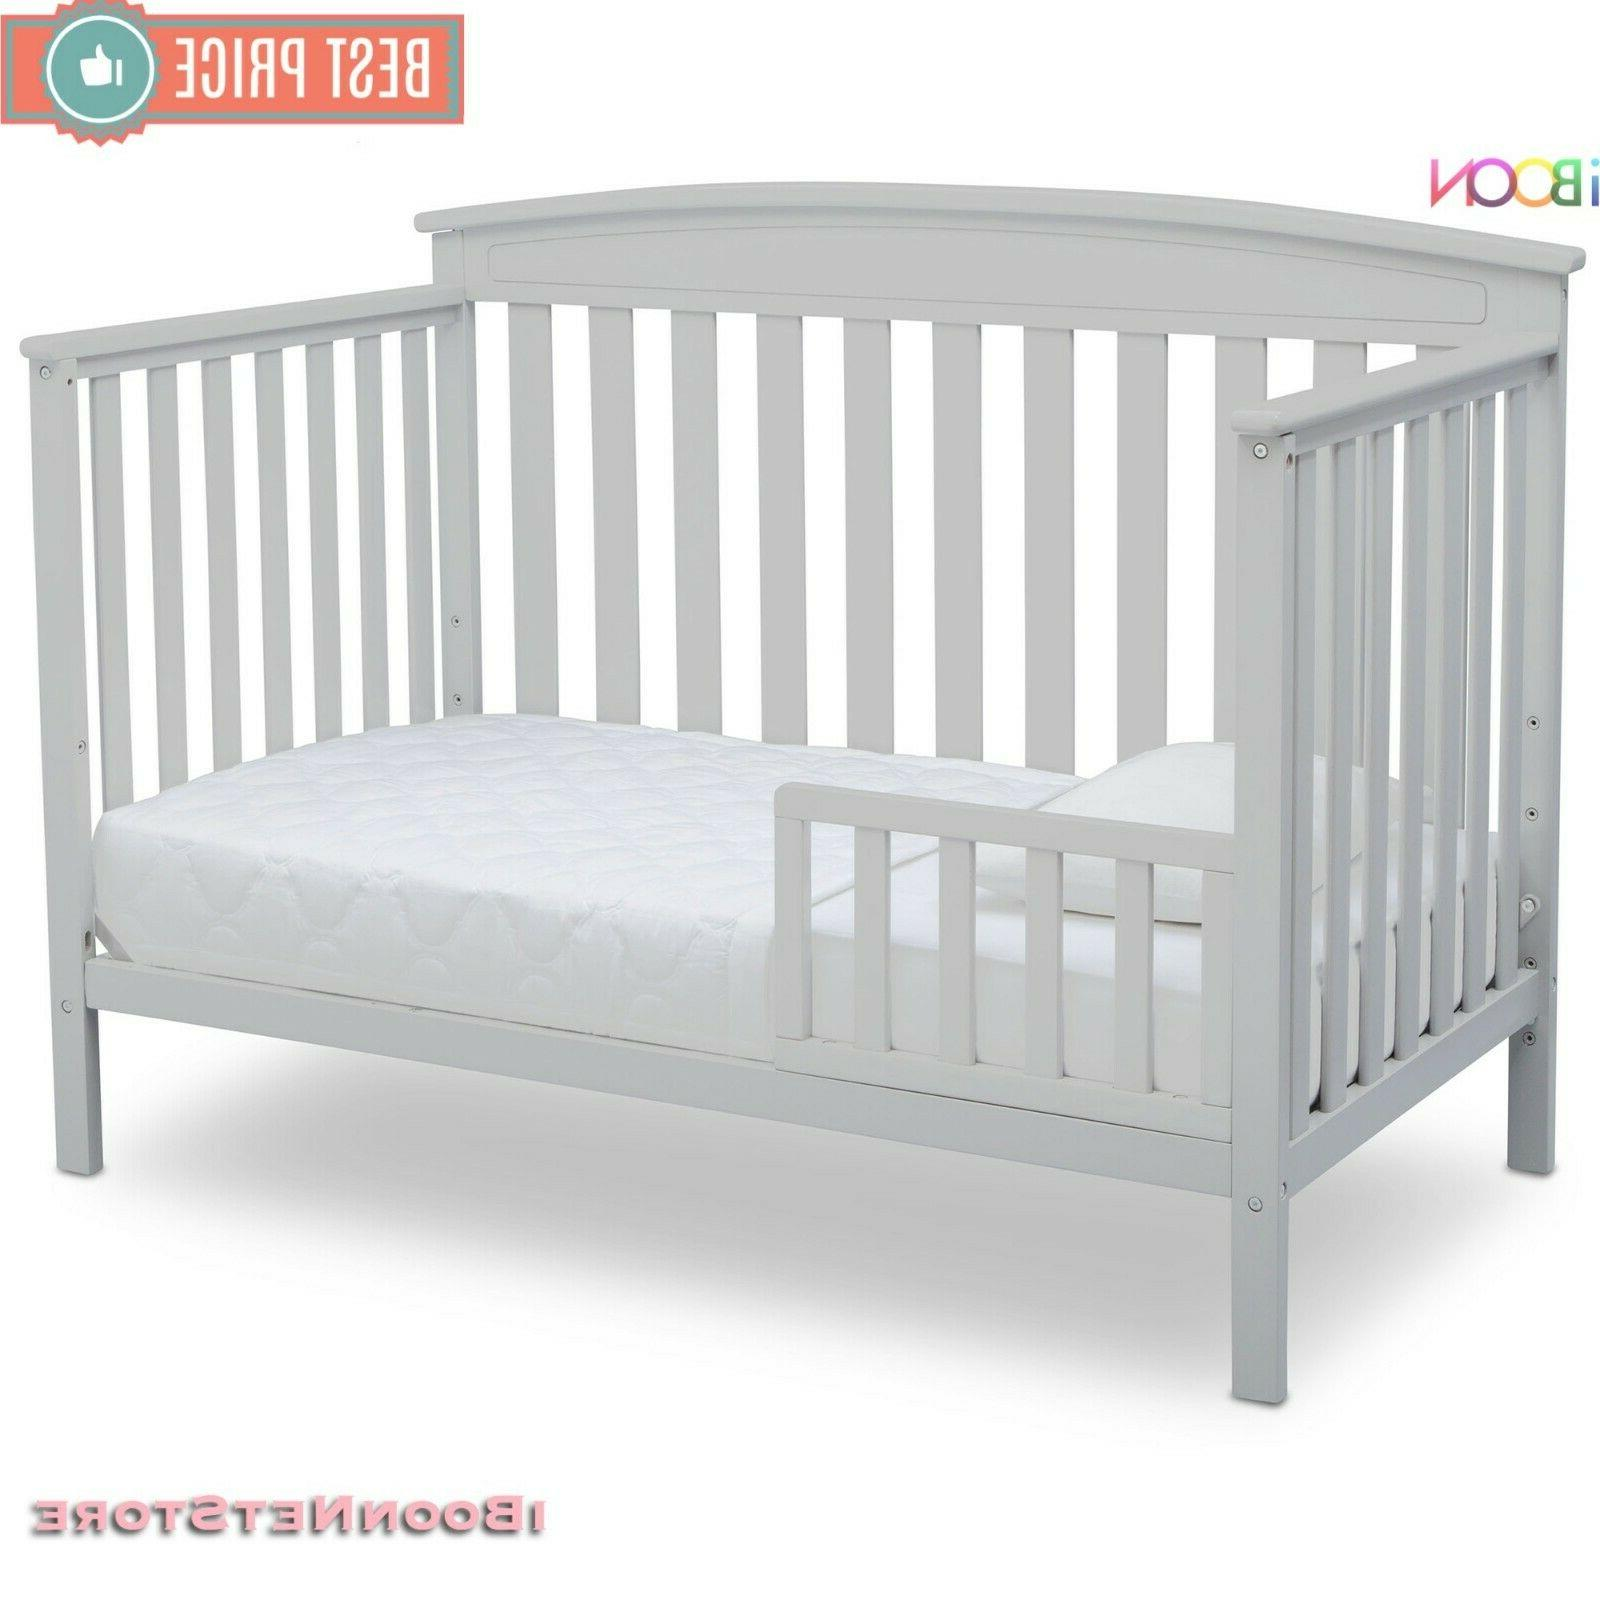 Baby Crib 4 1 Convertible Wood Convert Toddler Colors